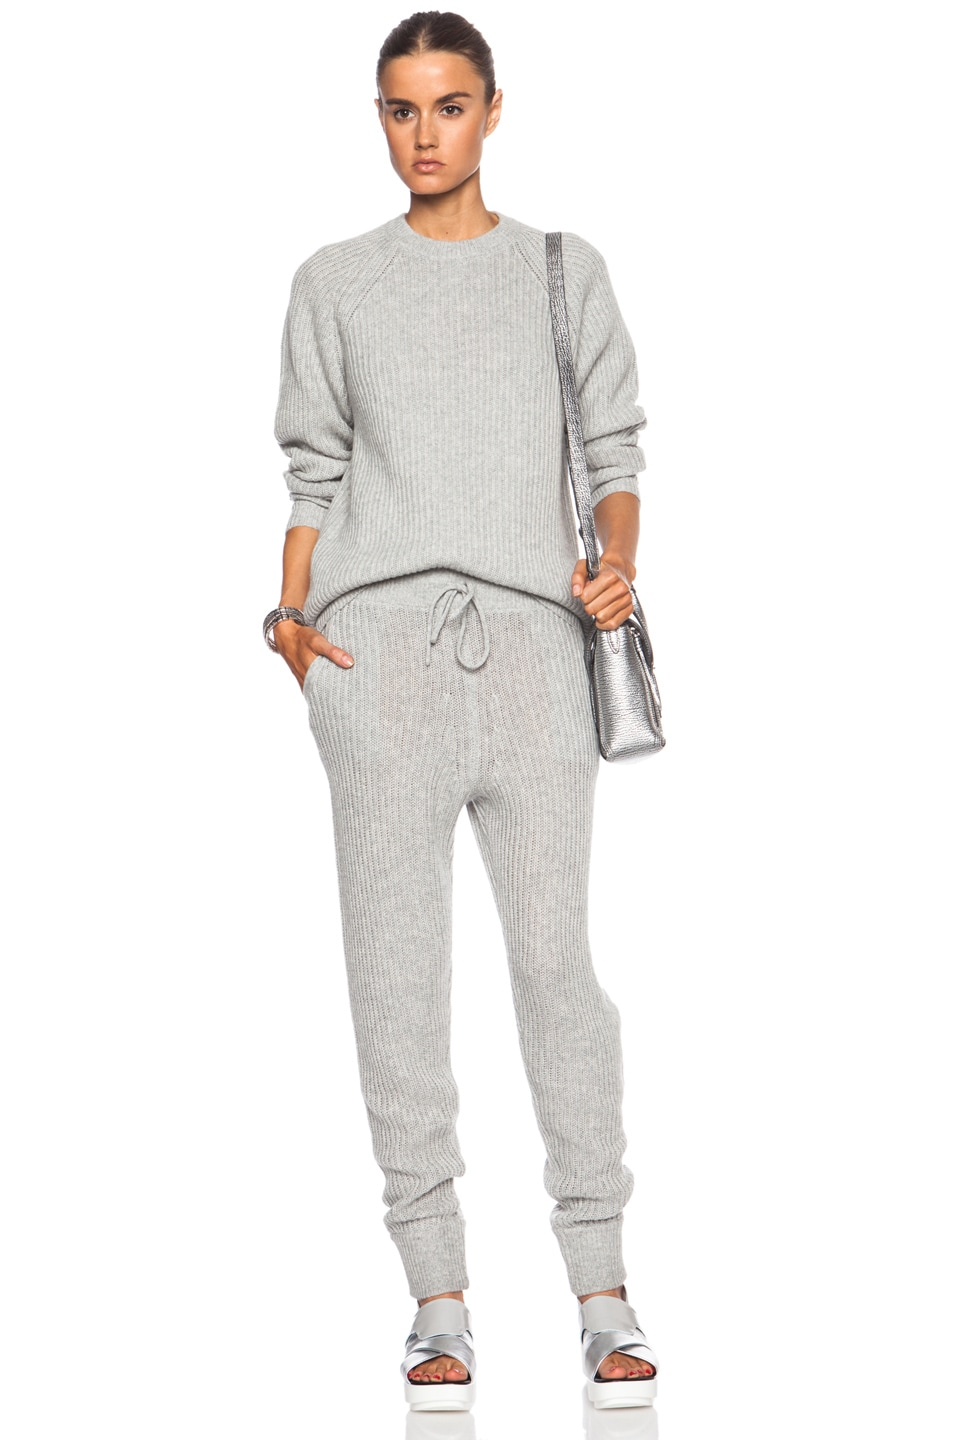 Image 5 of T by Alexander Wang Wool-Blend Sweatpants in Heather Grey